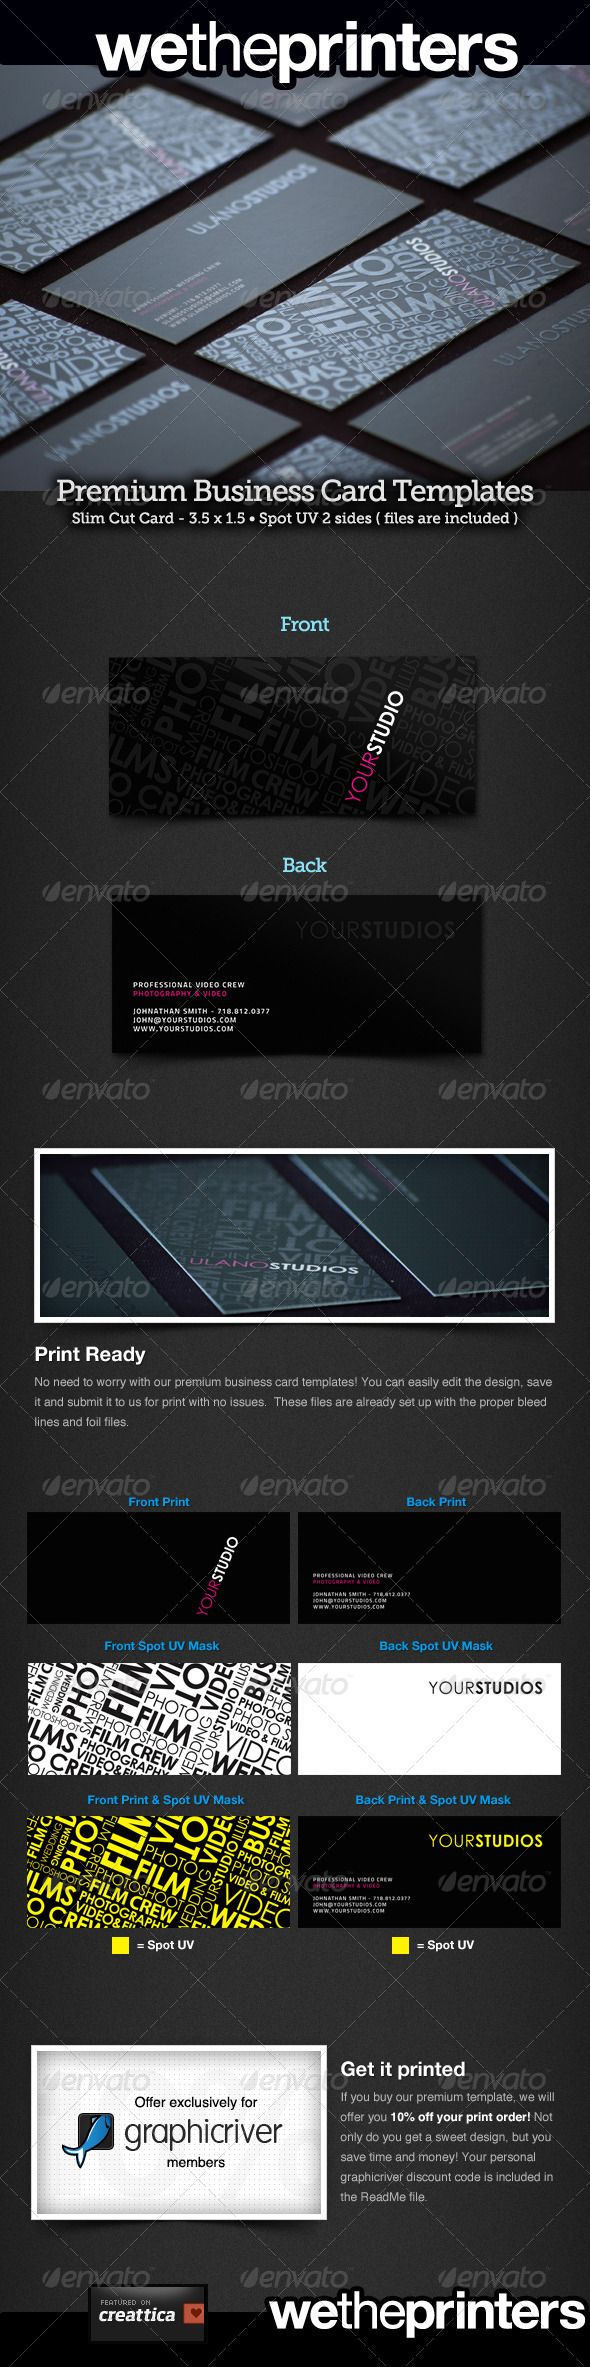 193 best Print Templates images on Pinterest | Print templates ...